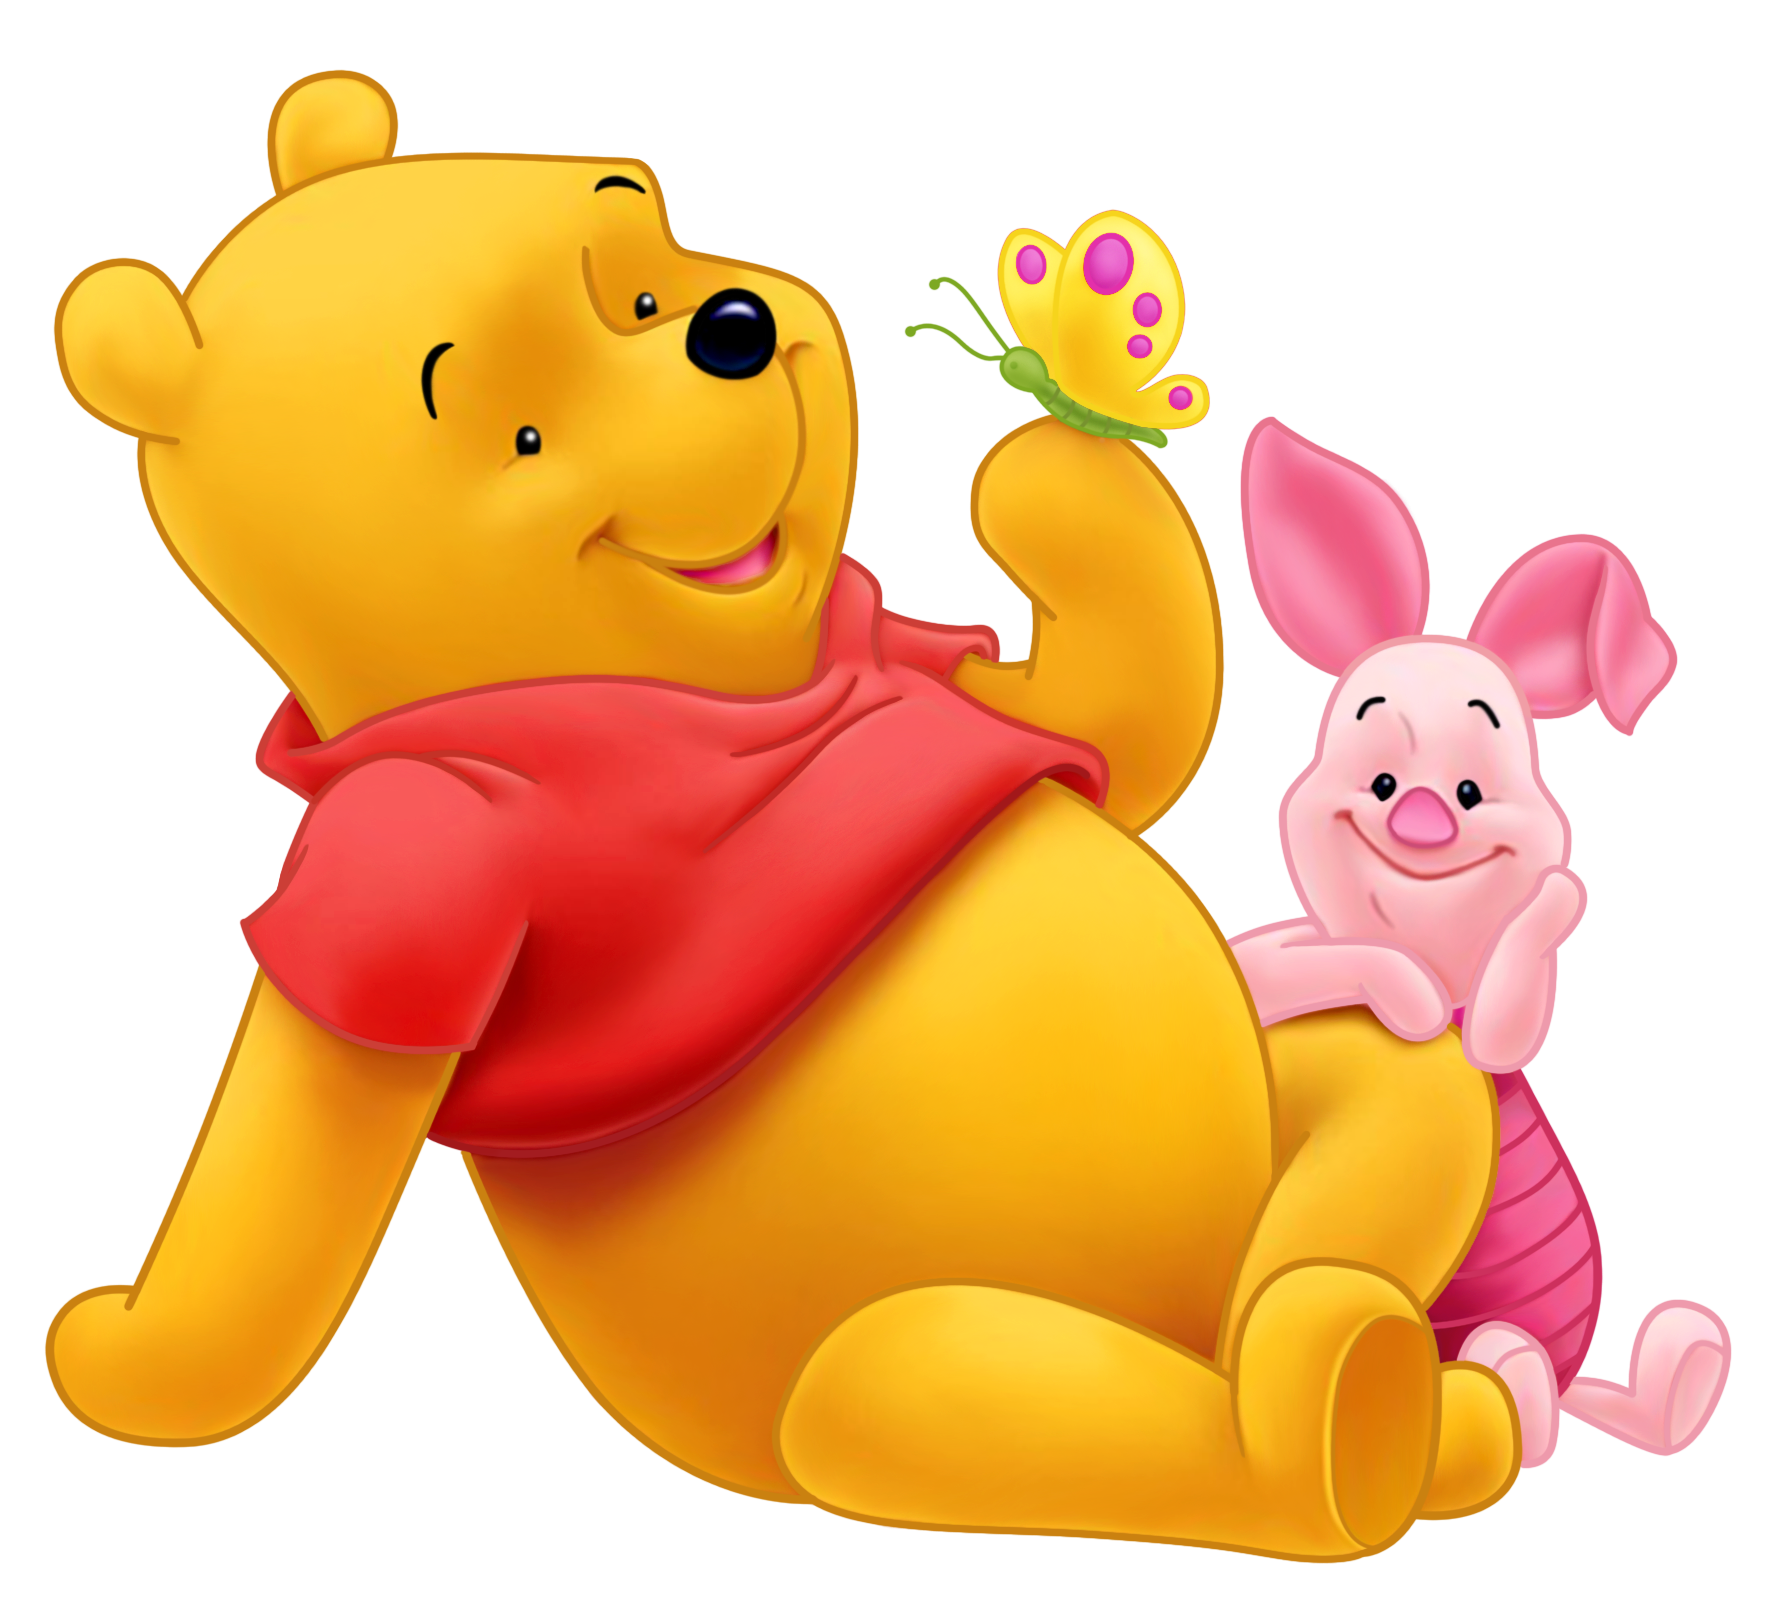 Winnie the pooh and. Motivation clipart high